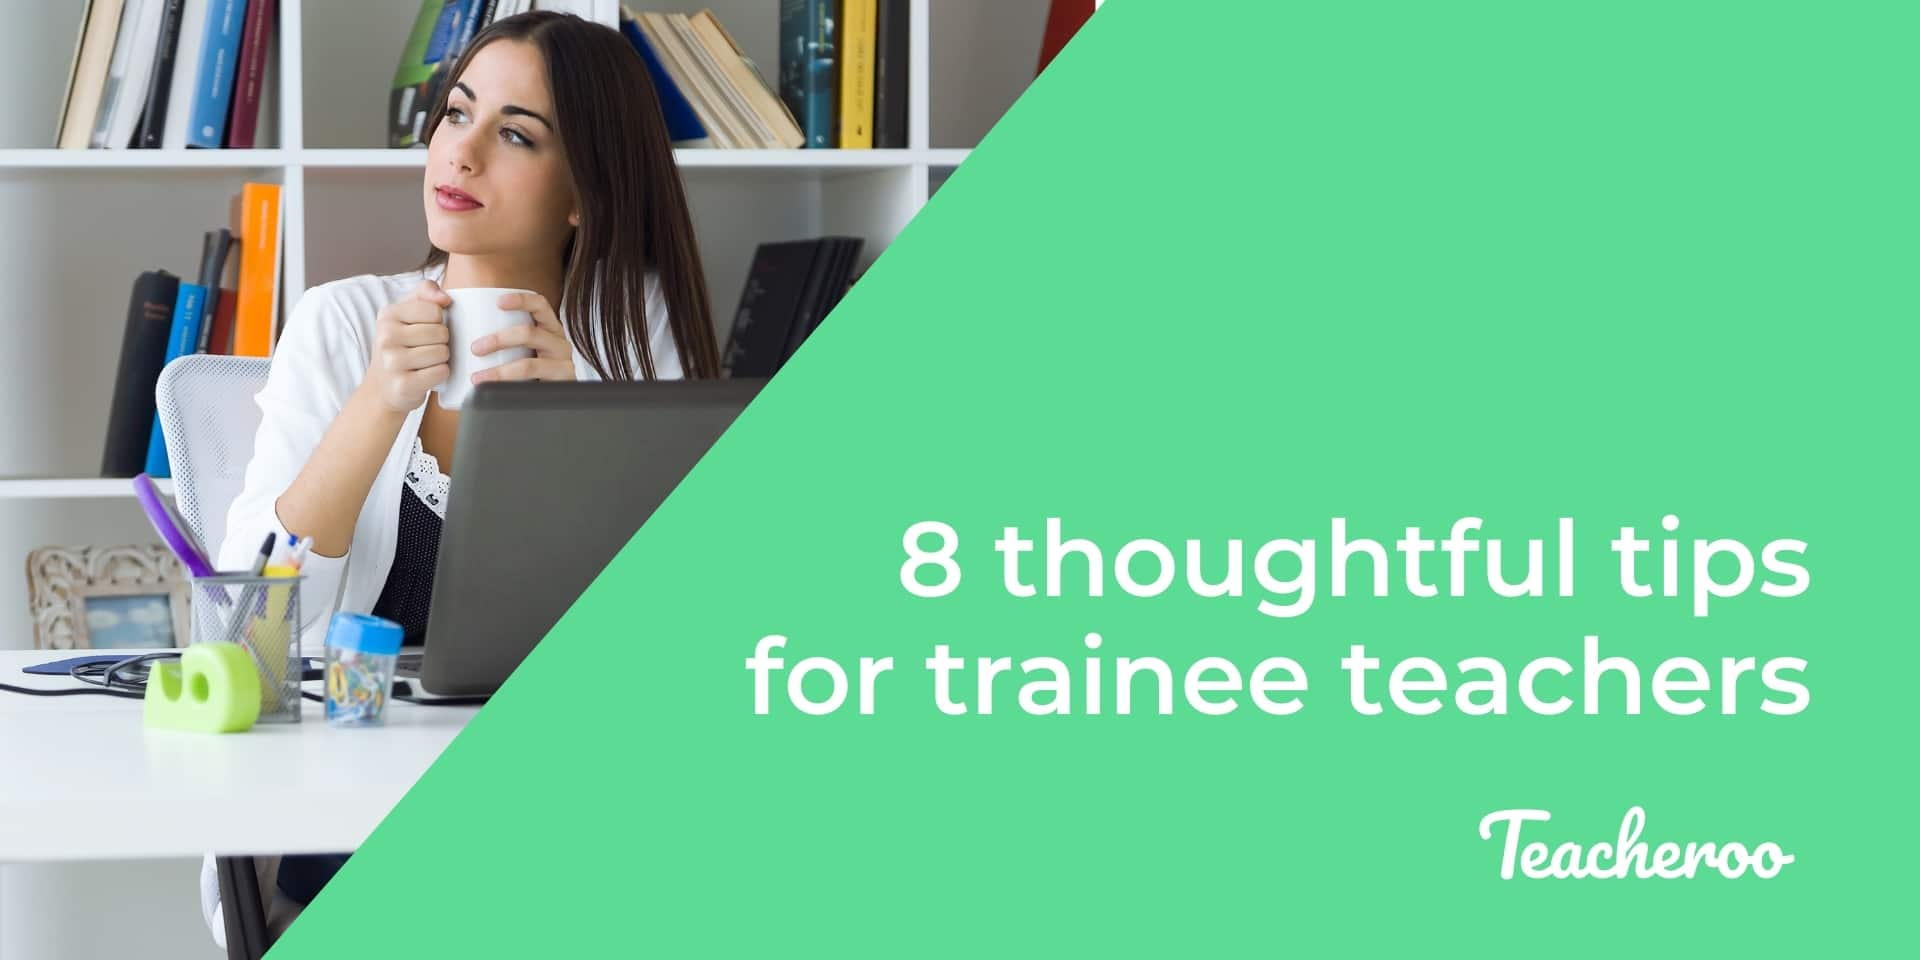 top tips for trainee teachers. Female teacher sits at desk thinking with cup in hand